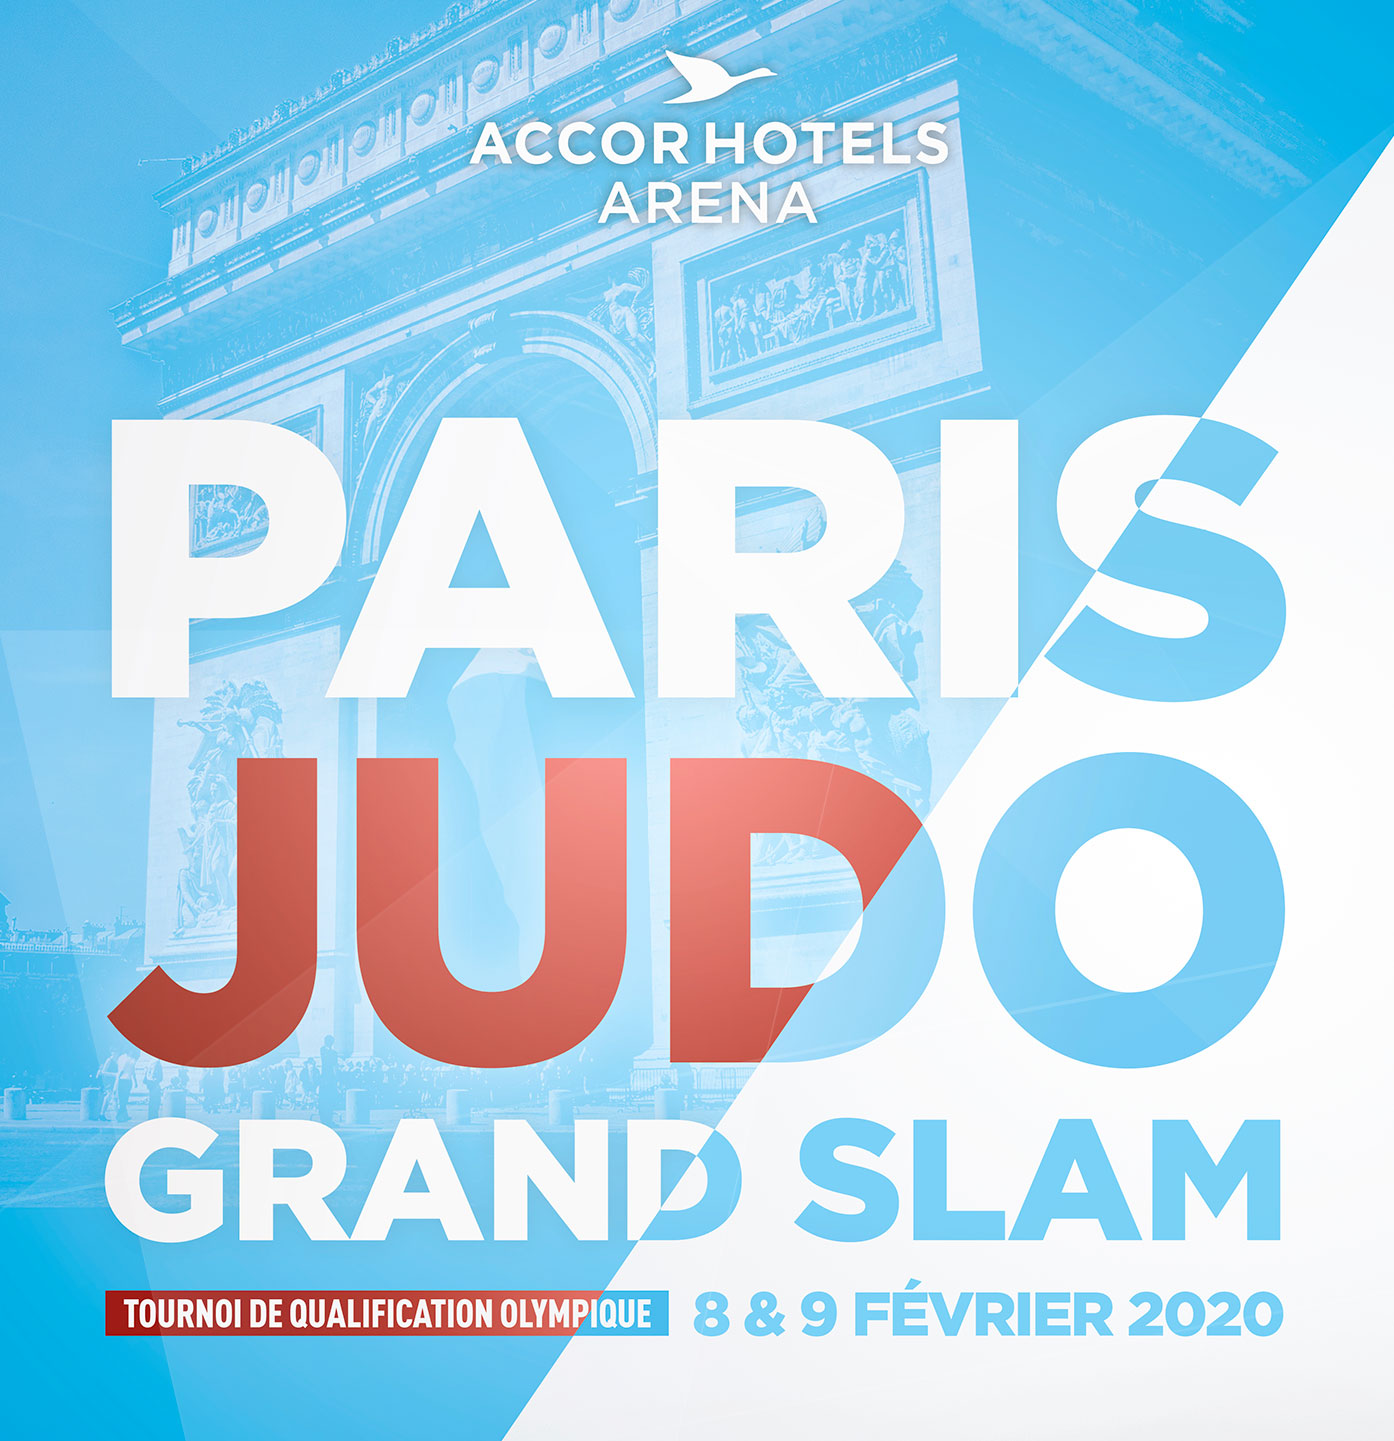 Déplacement au Grand Slam de Paris le 08/02/2020